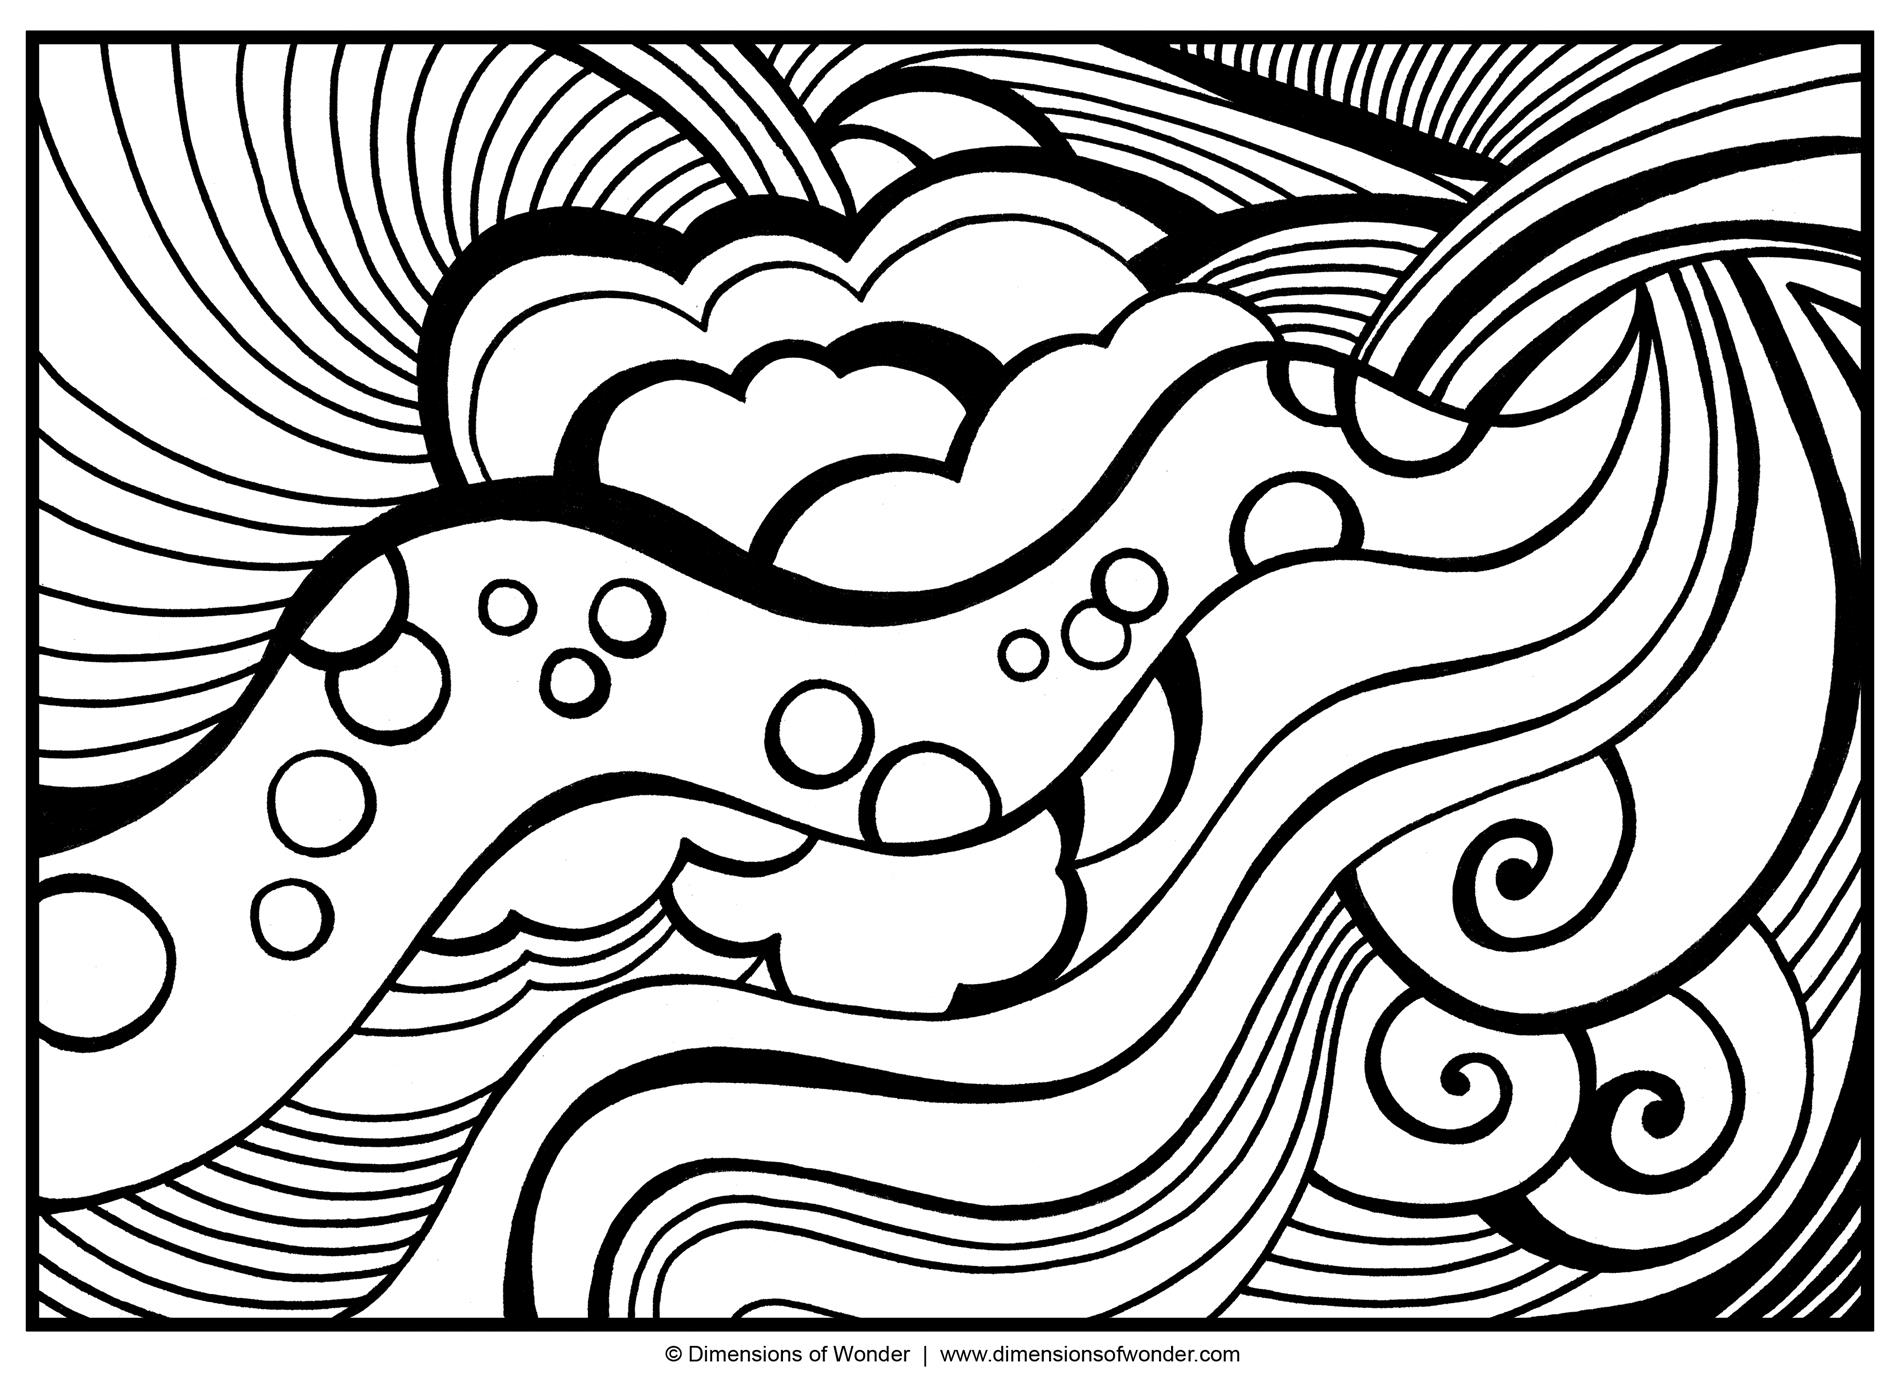 Coloring & activity sheets   Spanish Fort Public Library